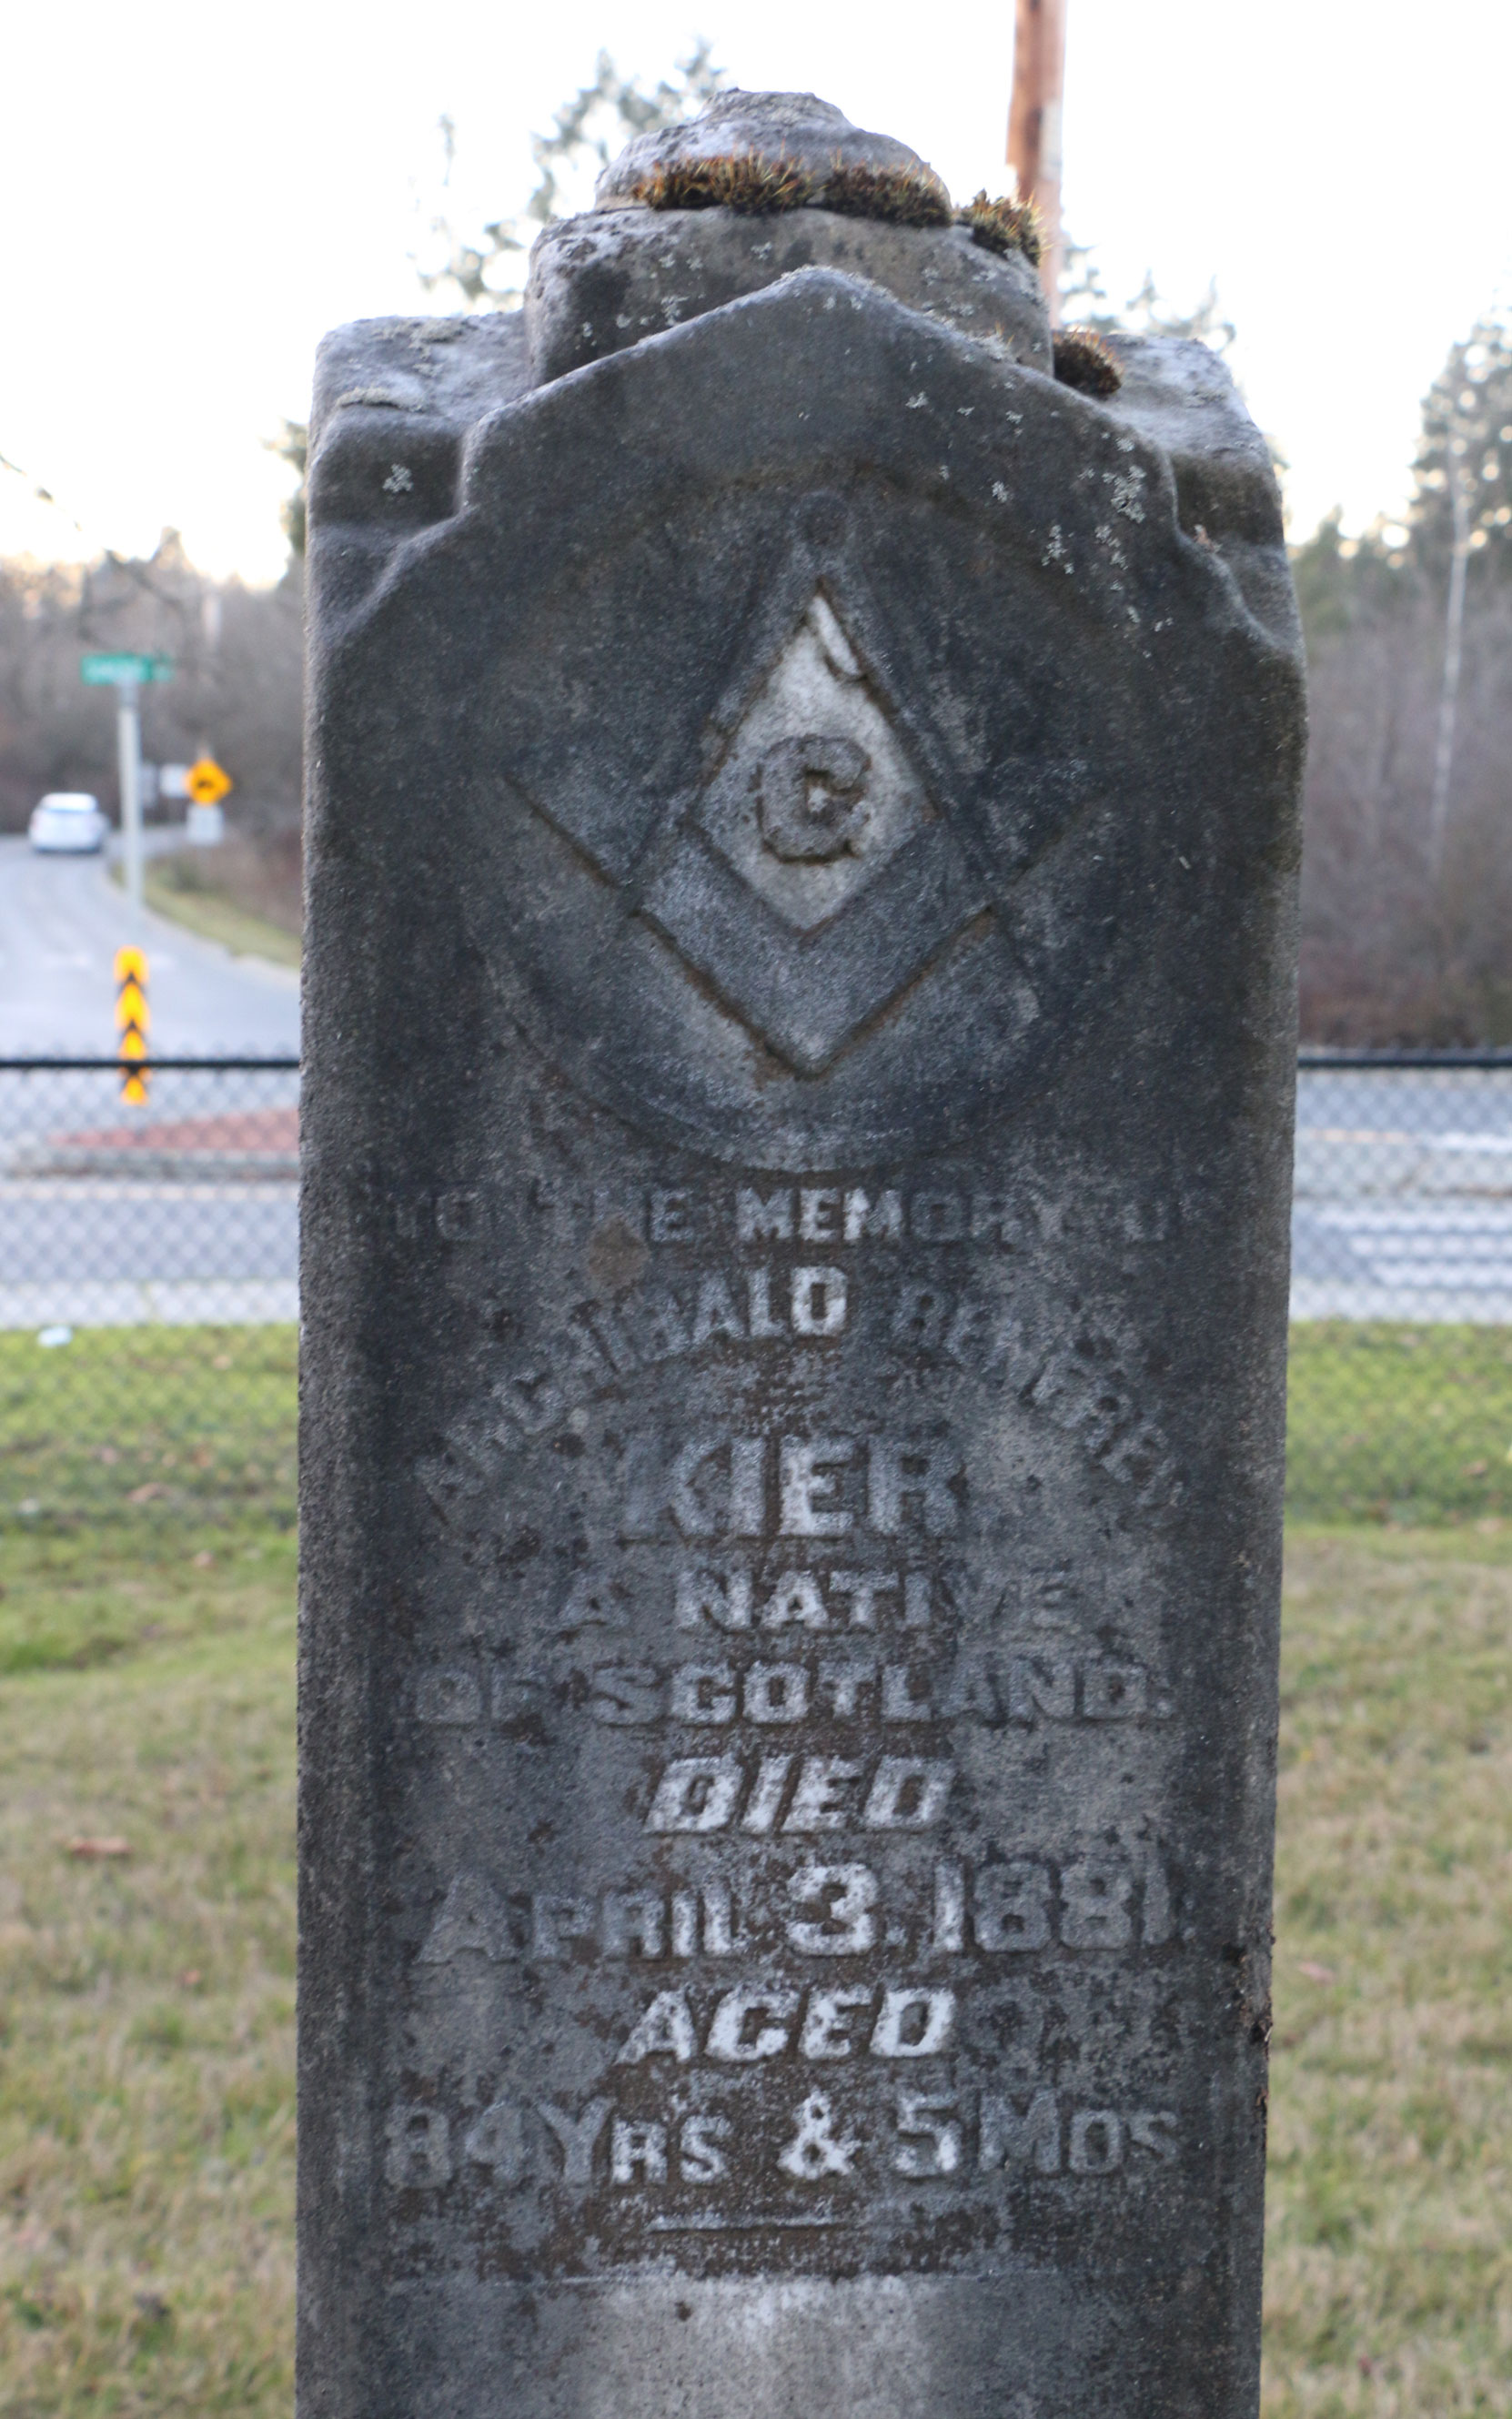 Archibald Renfrew Kier (died 3 April 1881, aged 84), grave inscription, Mountain View Cemetery, North Cowichan, BC (photo: Temple Lodge No. 33 Historian)